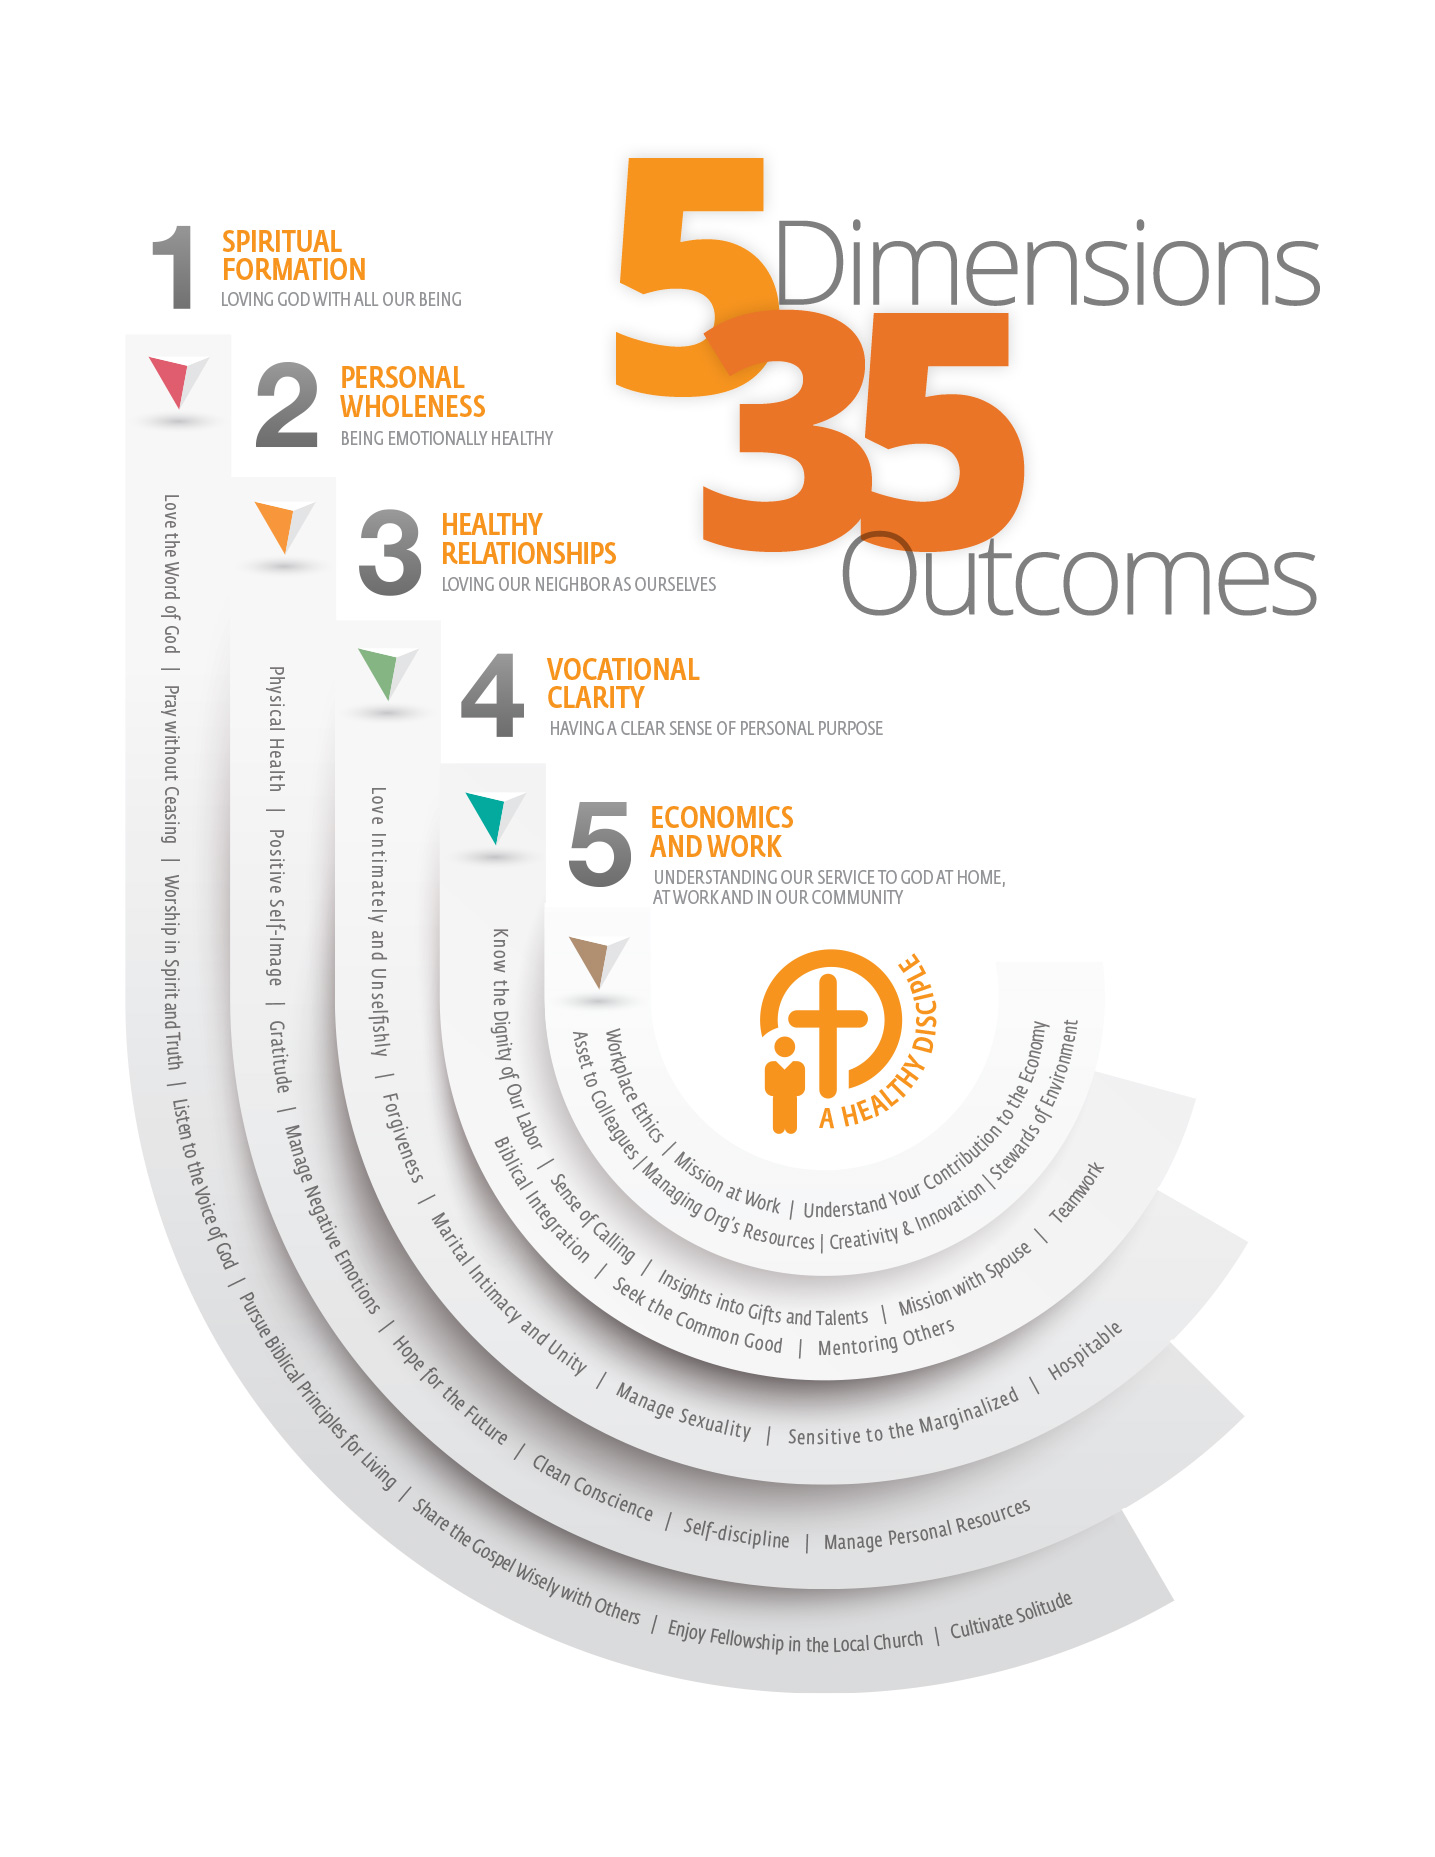 The 5 Dimensions